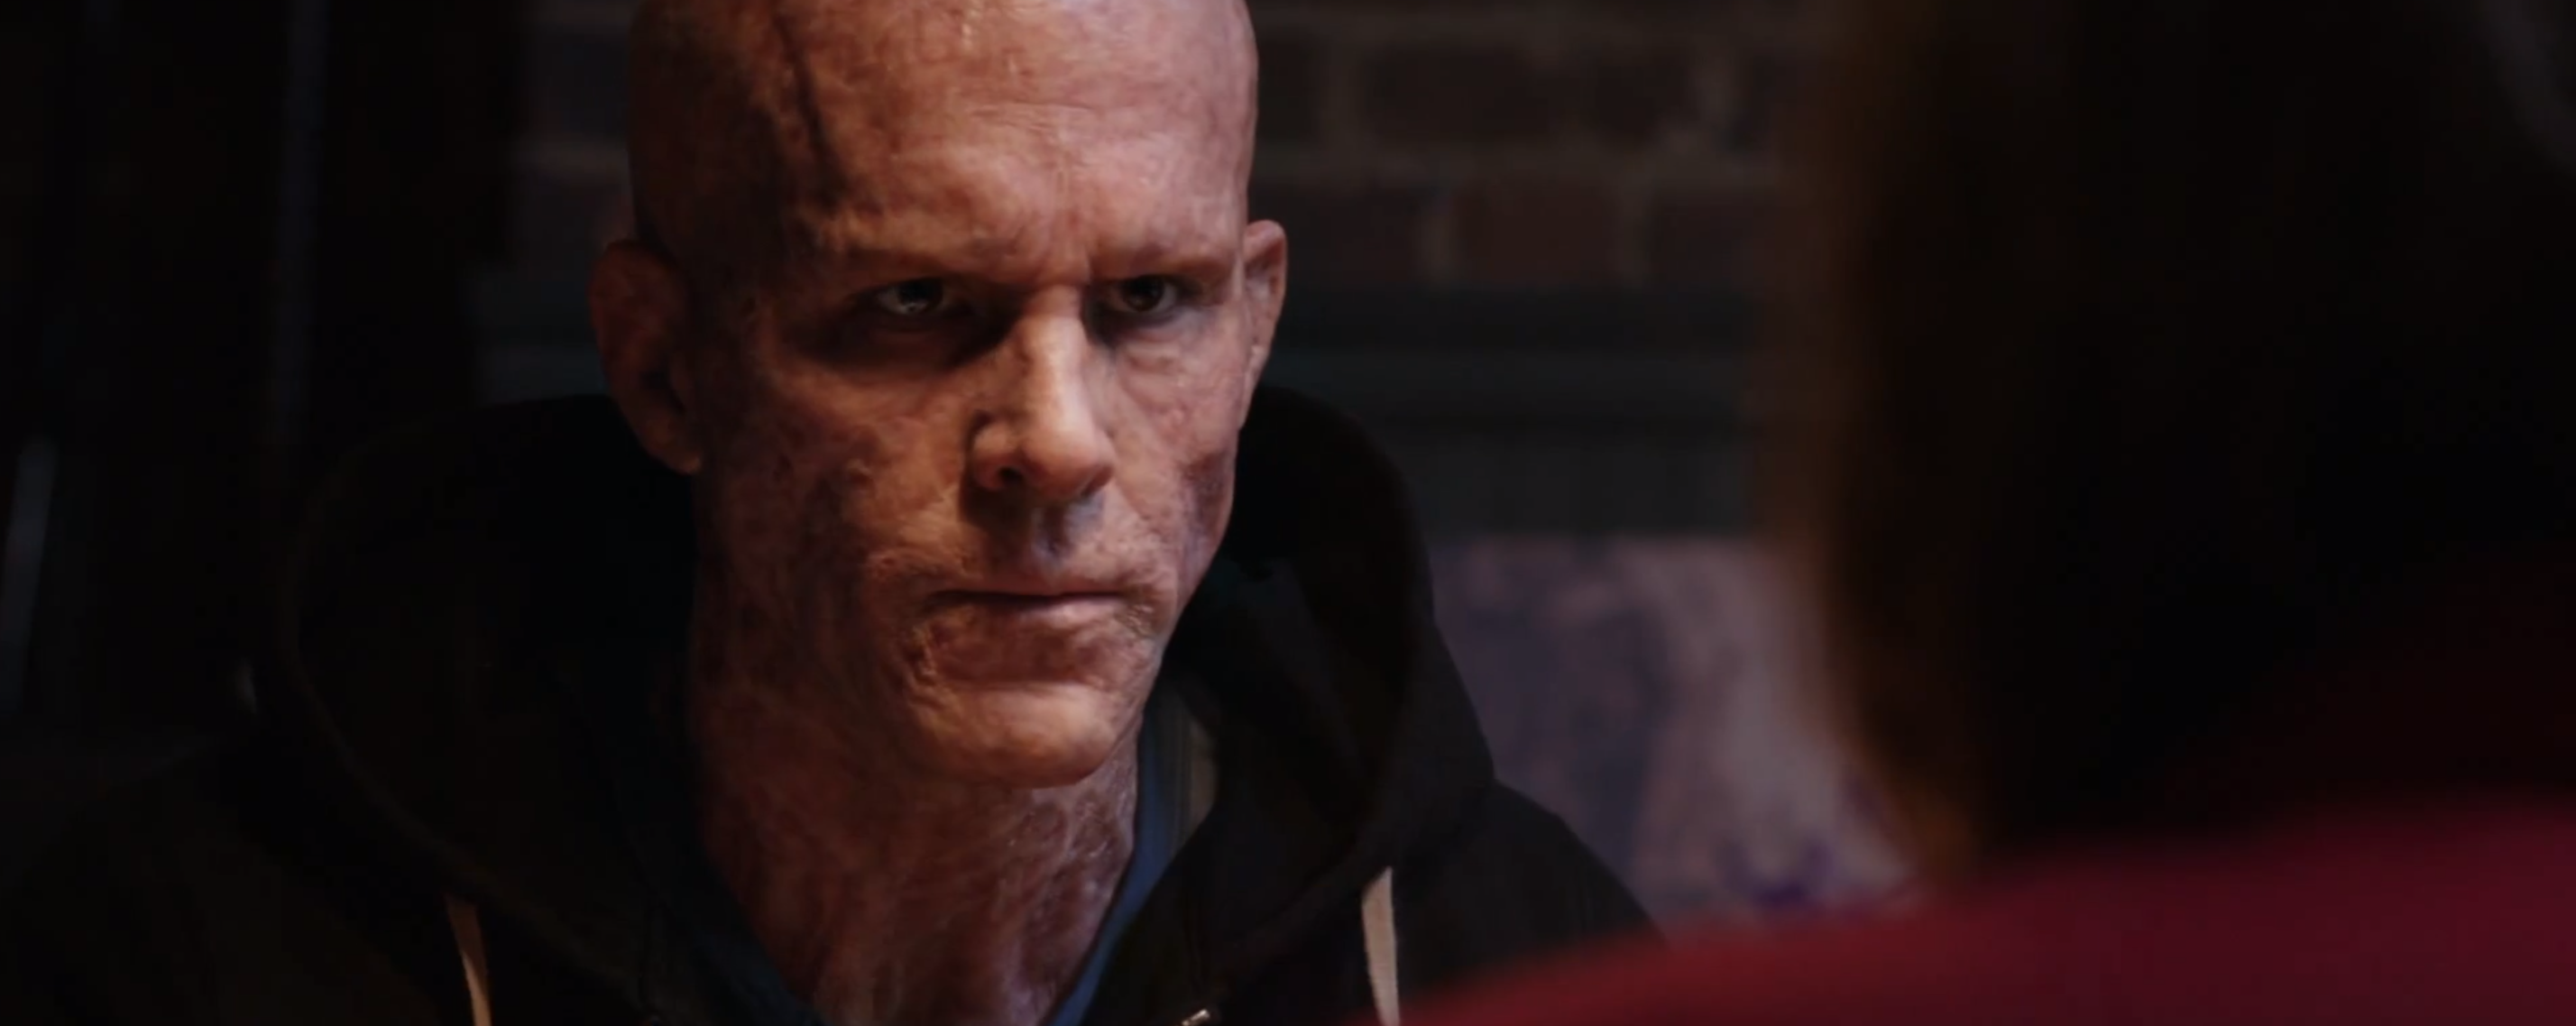 Deadpool Trailer Wade's Face Unmasked | The Insightful Panda